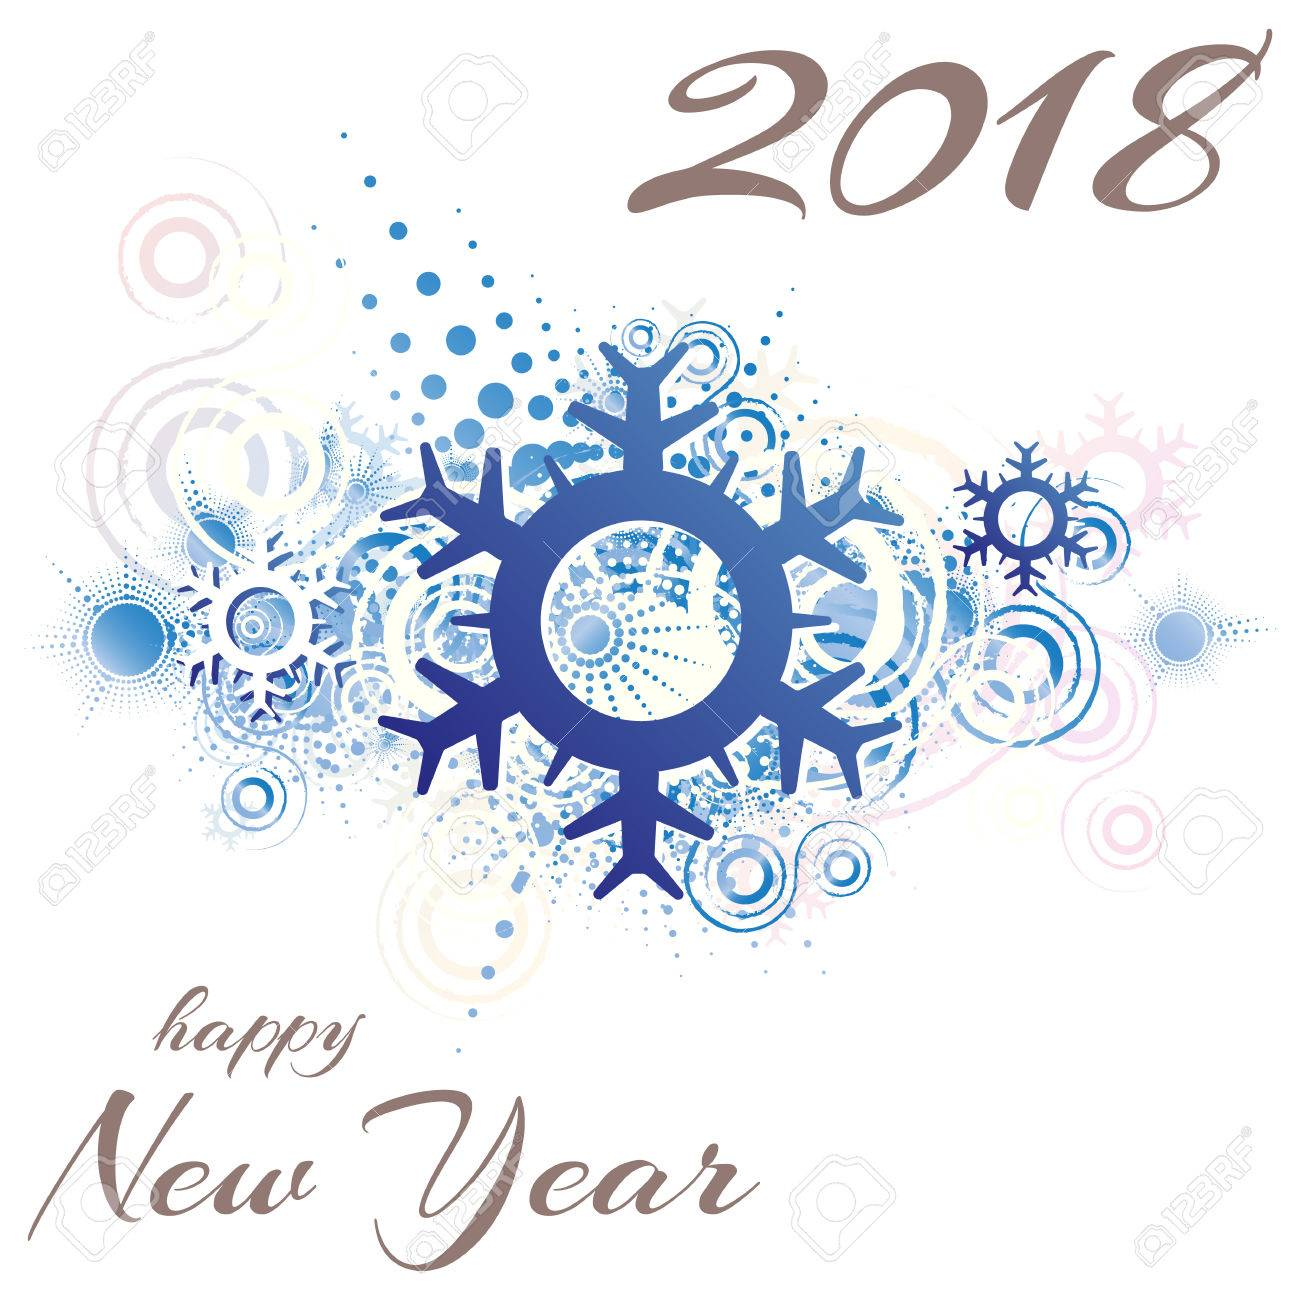 happy new year 2018 snowflake abstract grunge background vector illustration stock vector